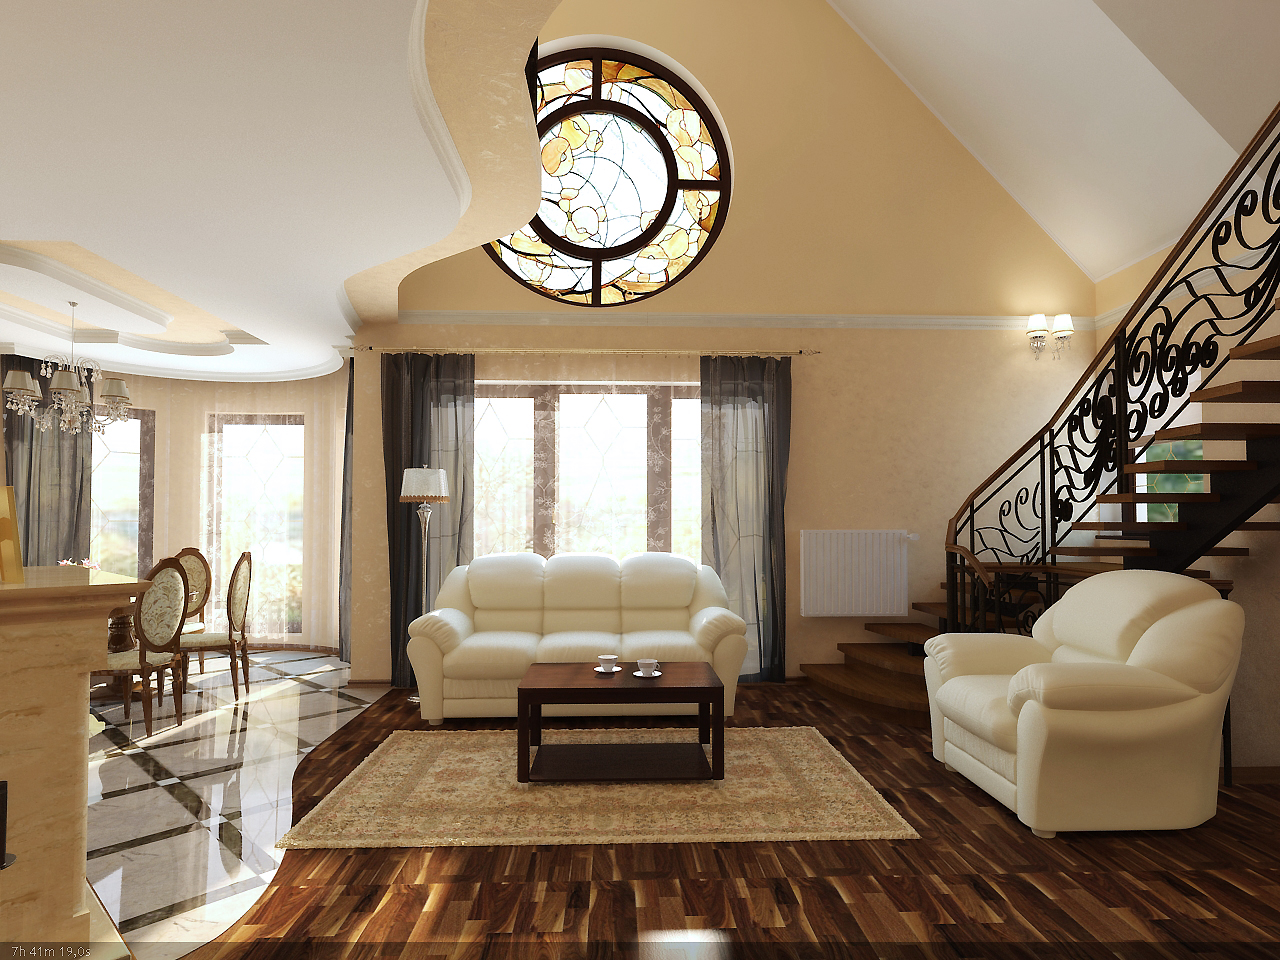 classic home interior - Interior Designs Ideas